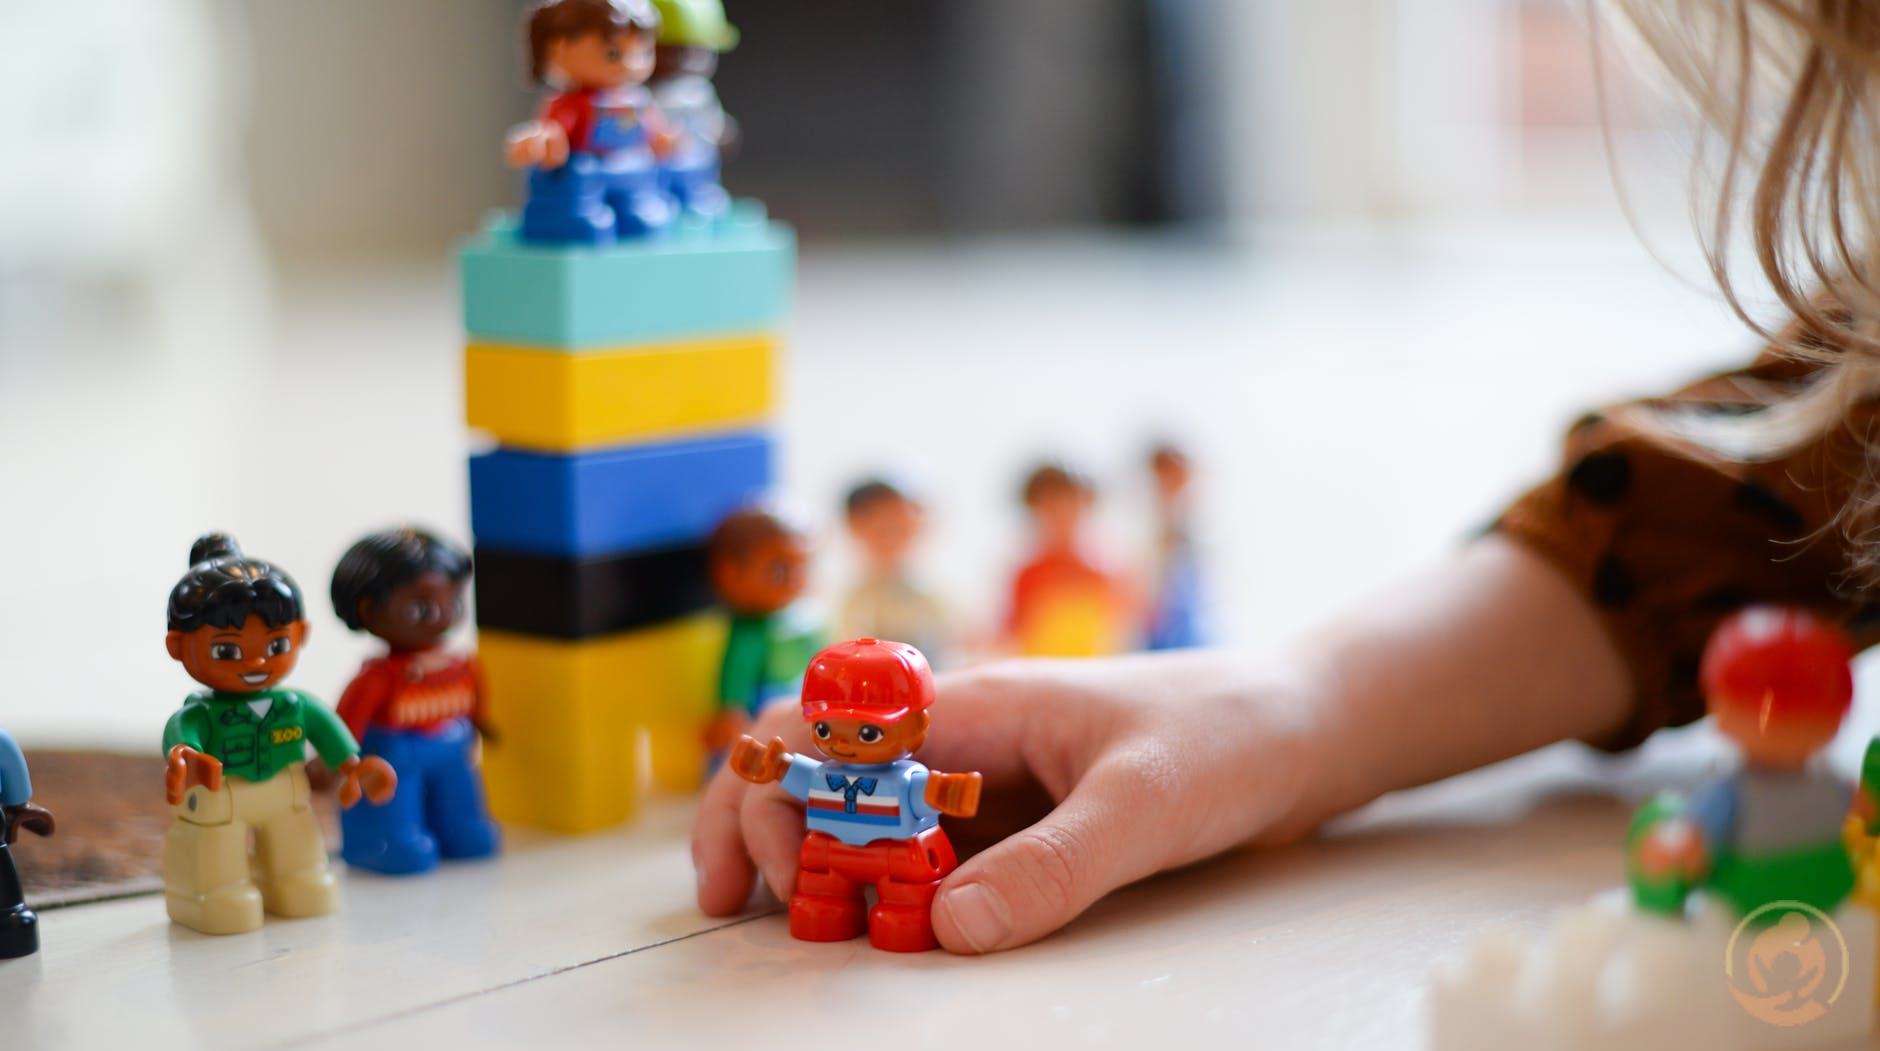 Finding the Best Childcare Center for Adopted Children Featuredimage person playing mini fig - Finding the Best Childcare Center for Adopted Children